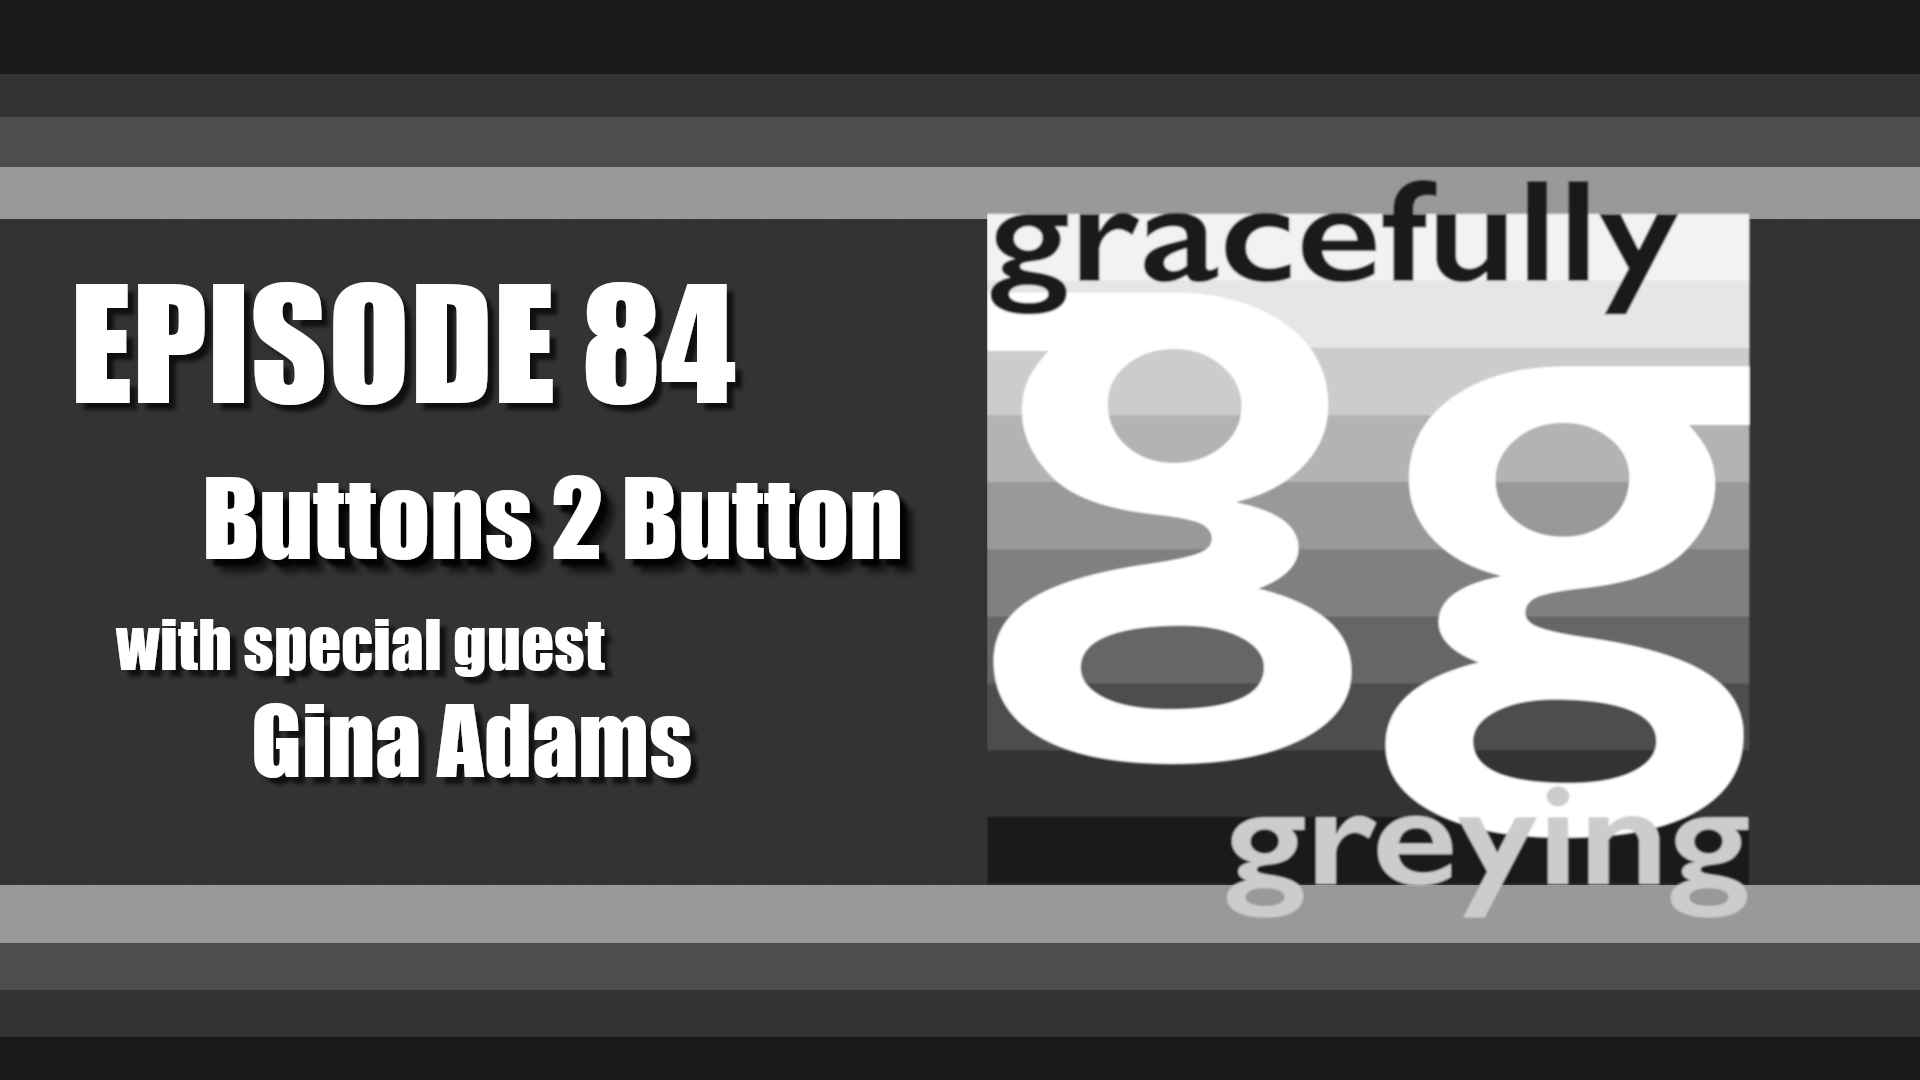 Gracefully Greying - Episode 84